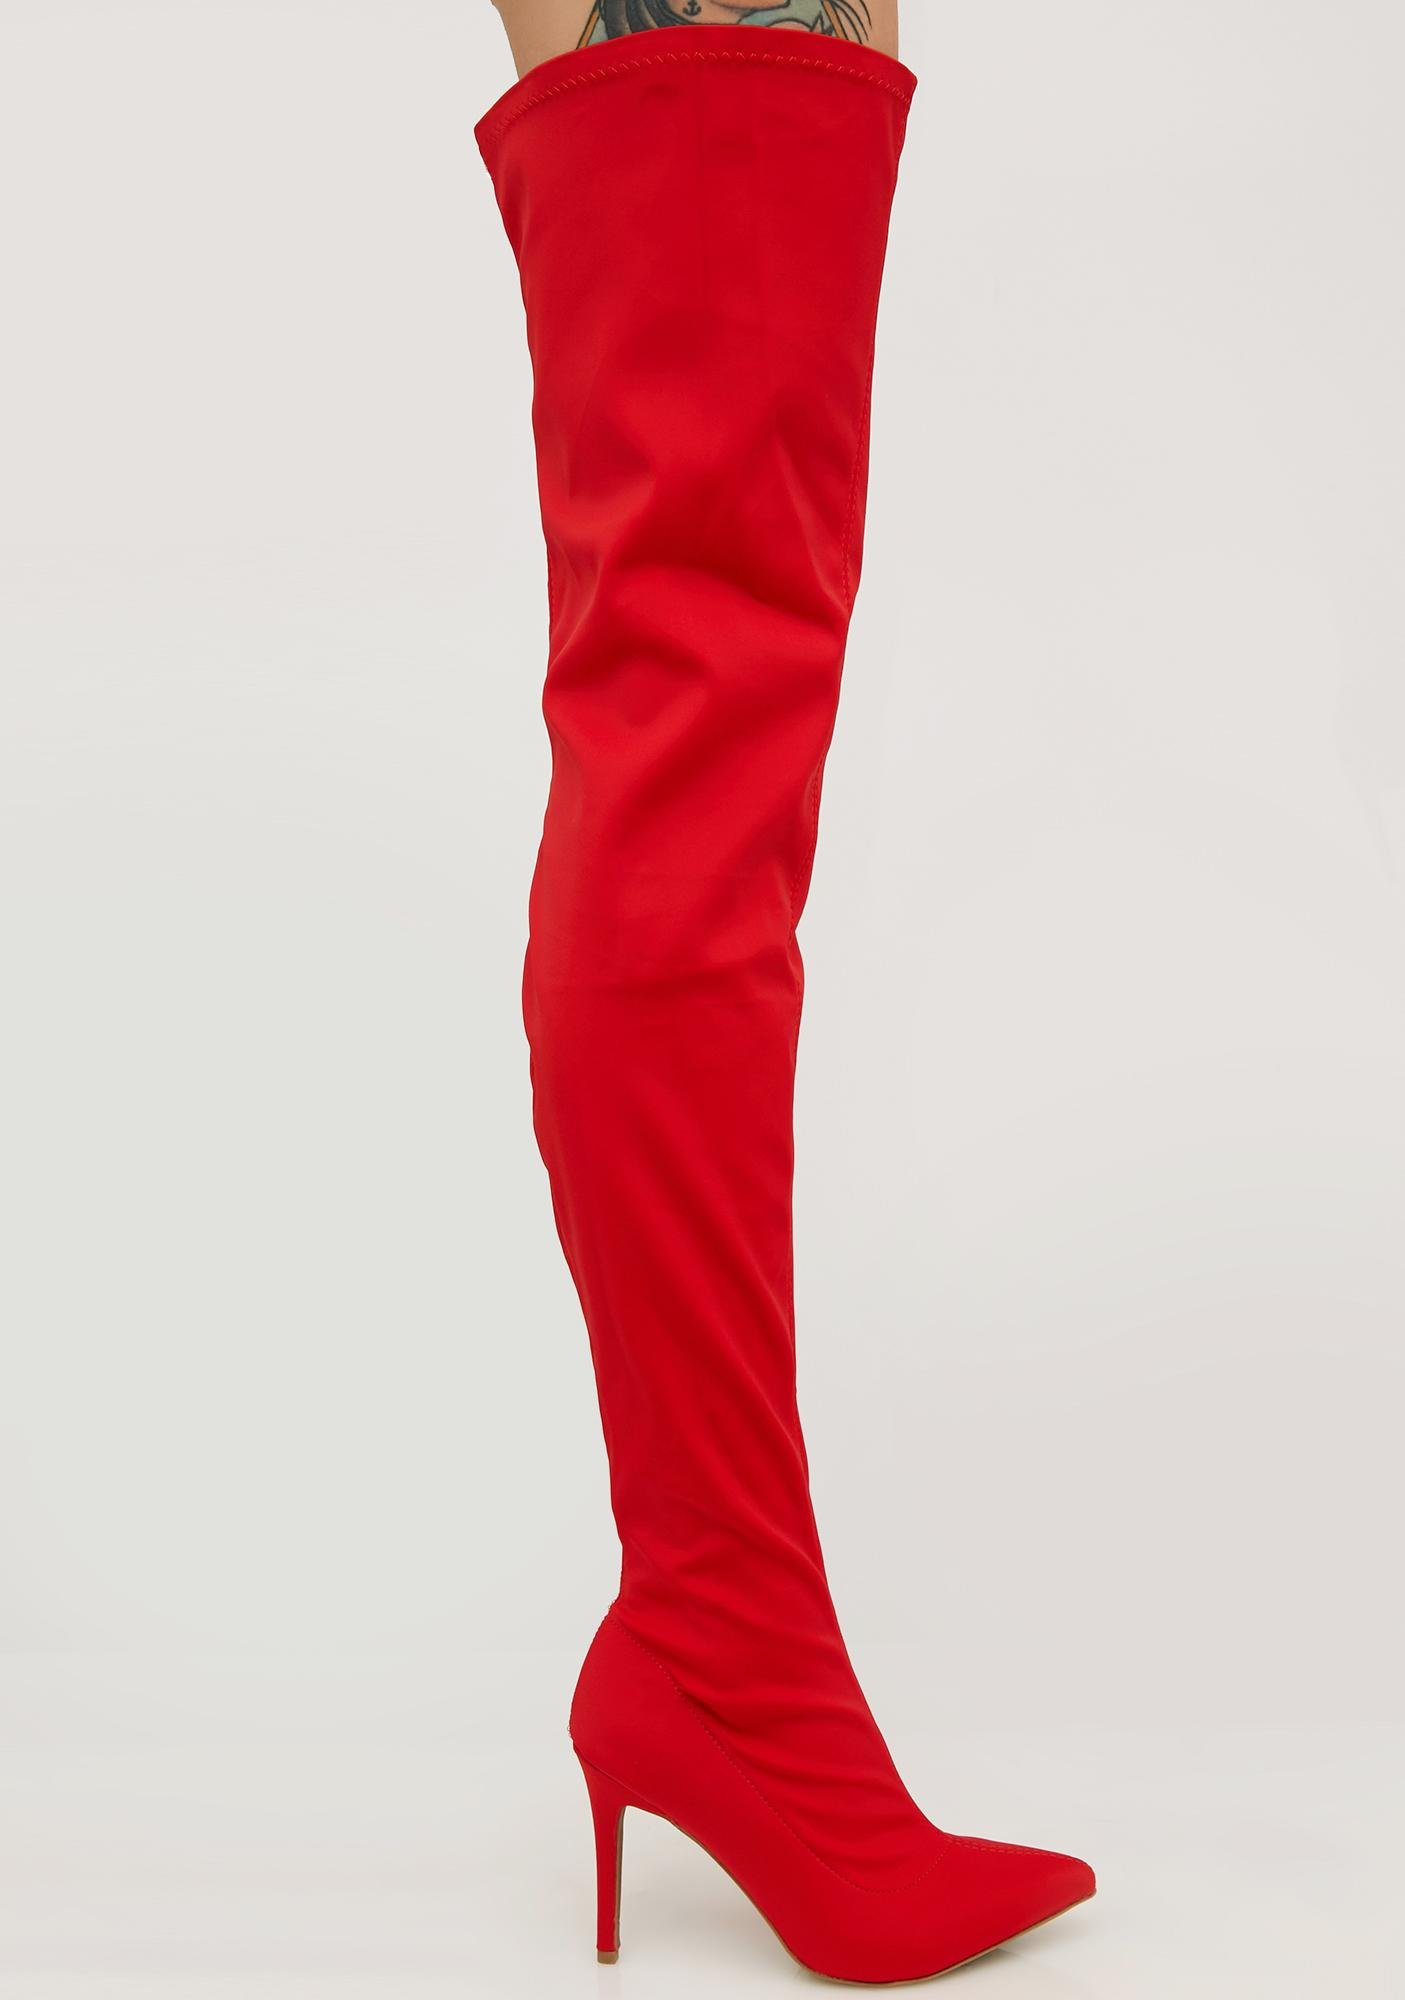 6f33803bcd4 Akira Over The Knee Boots